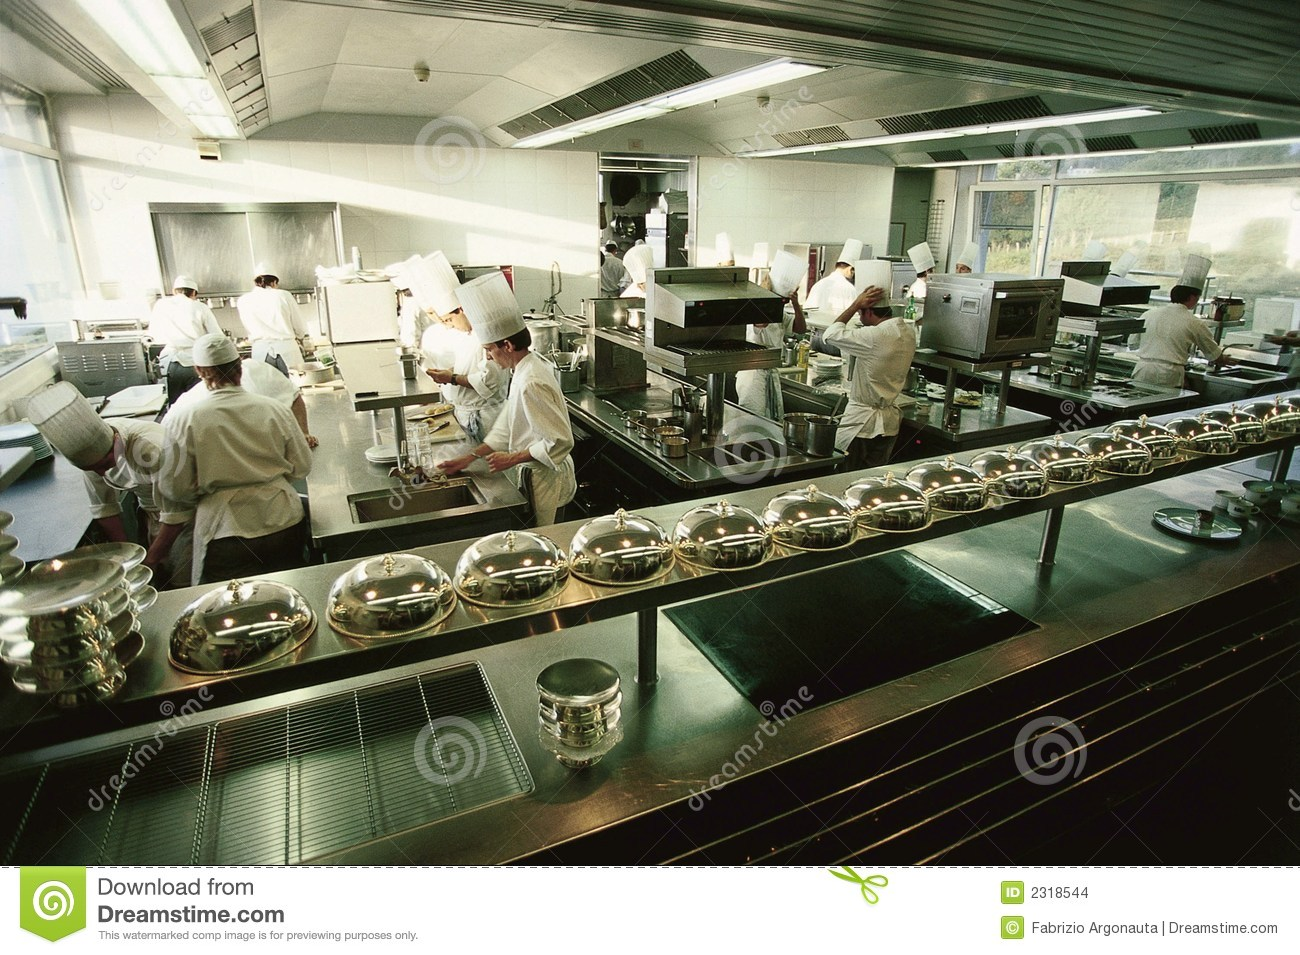 Restaurant Kitchen Photos restaurant kitchen stock photography - image: 1664272